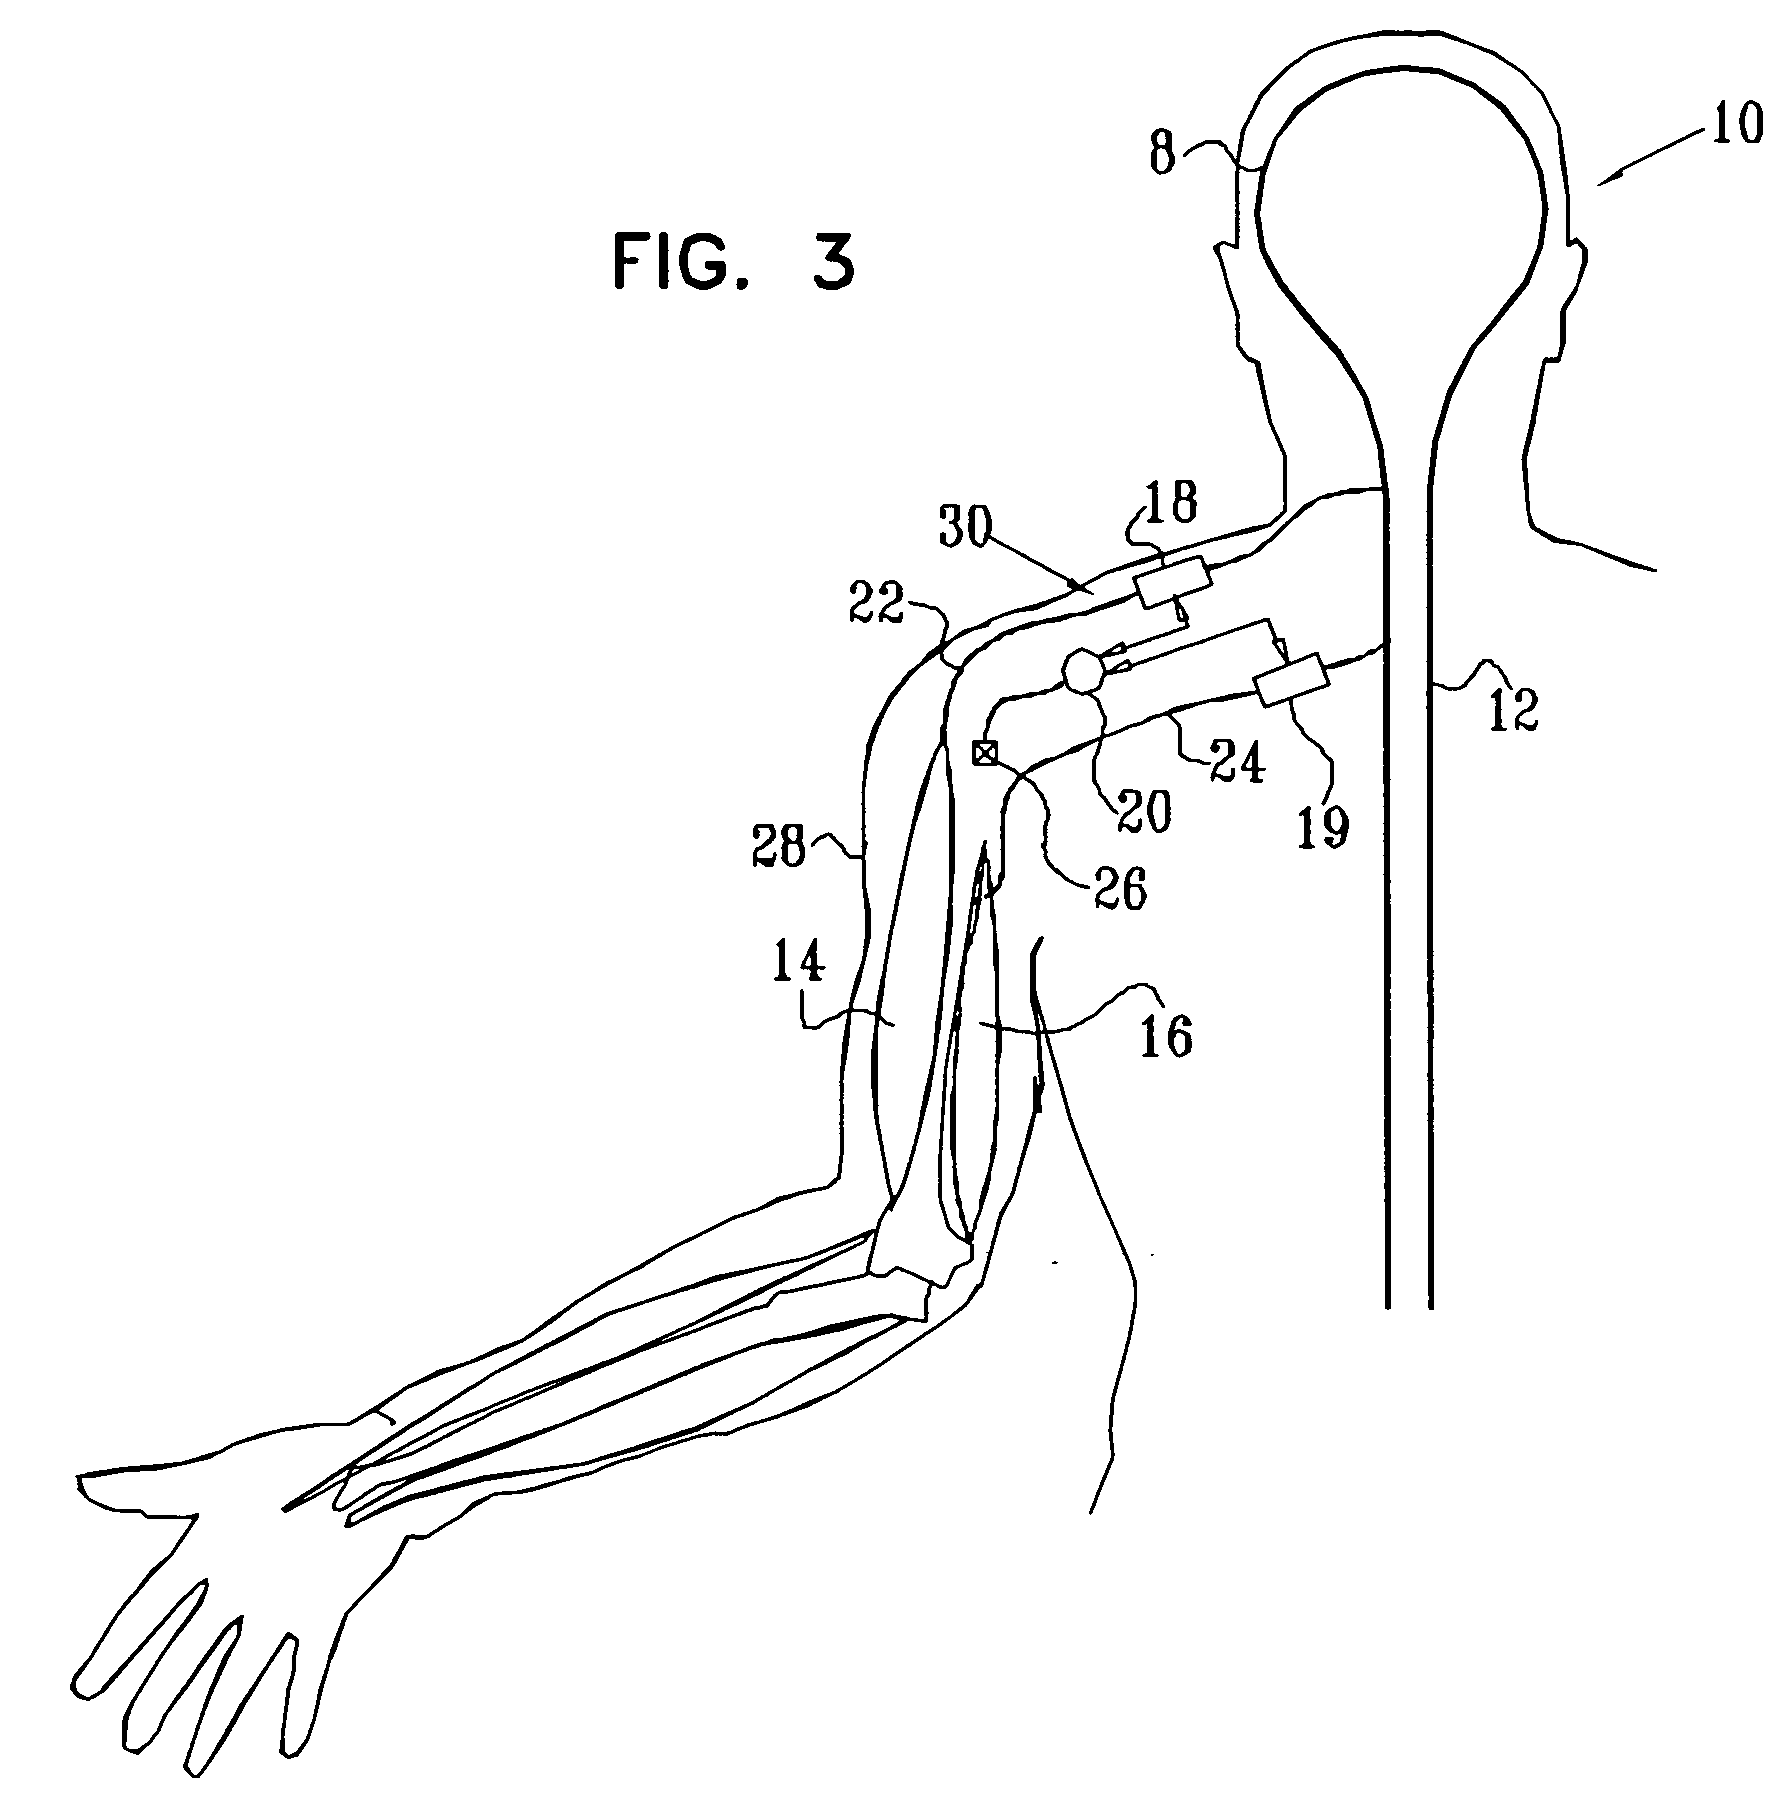 Patent Drafting 101: Going a Mile Wide and Deep with Variations in a Patent Application